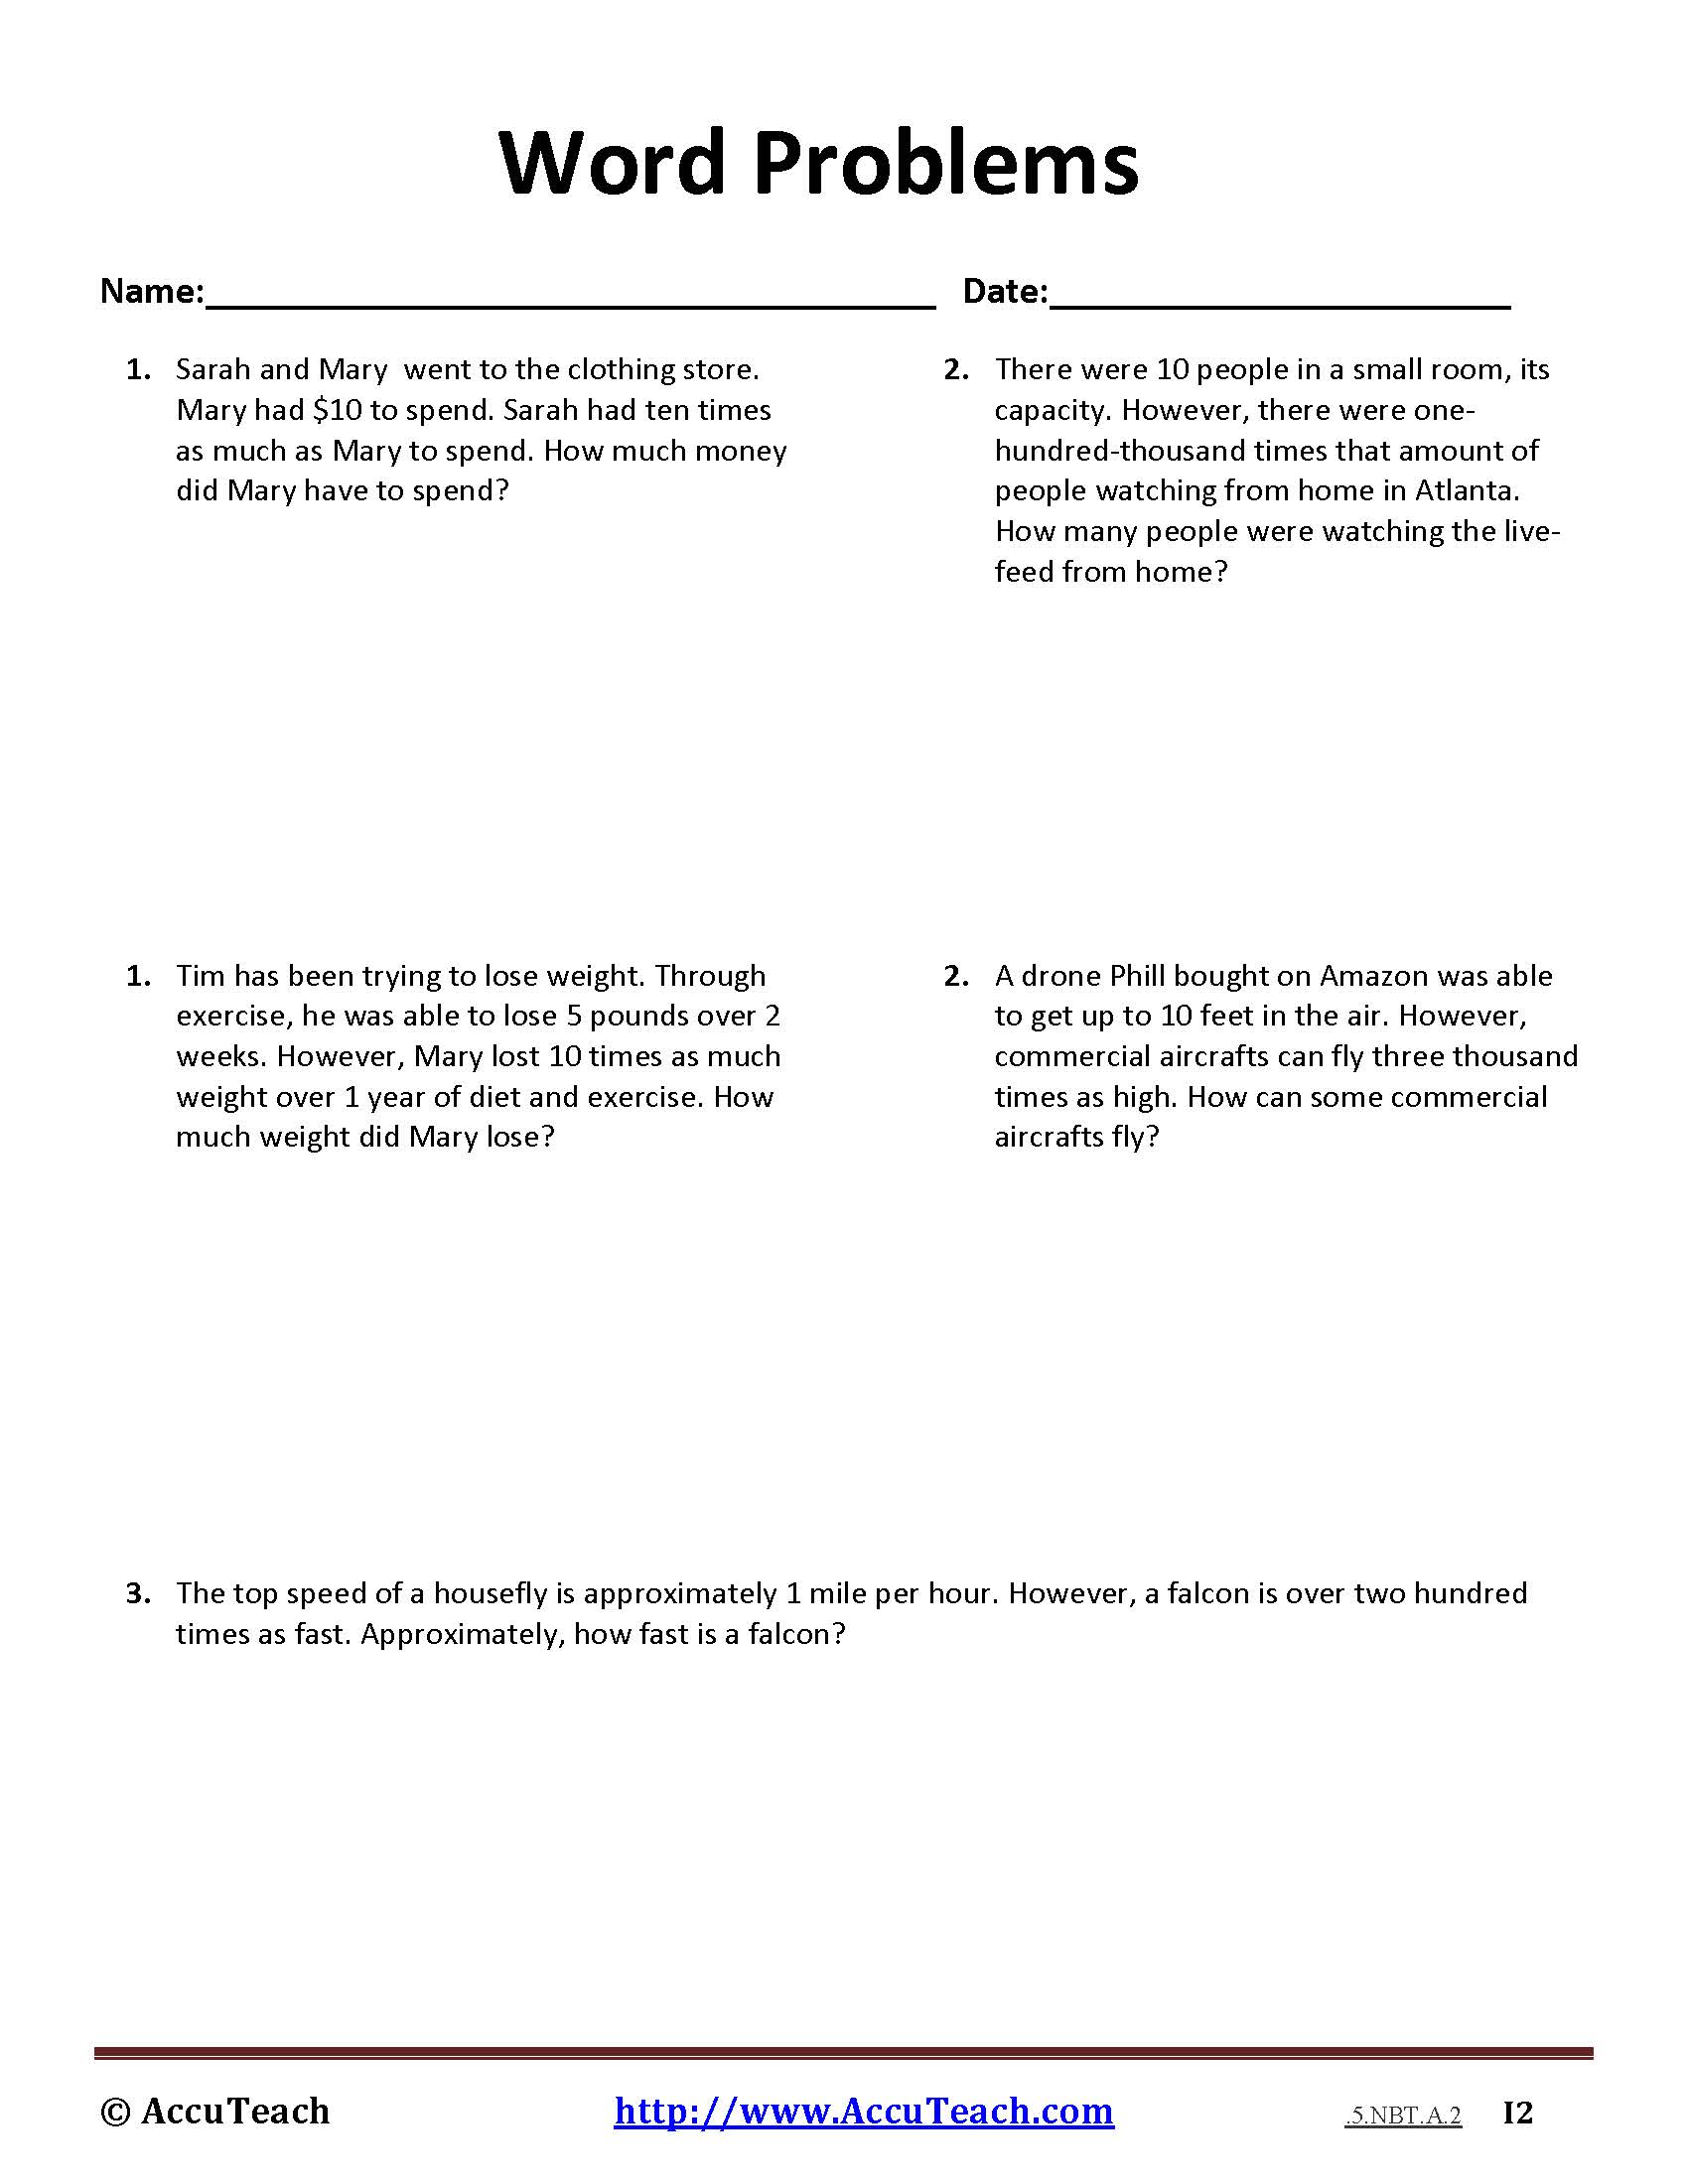 5 Nbt A 2 Common Core Story Problems Activity Sheet 8 Accuteach